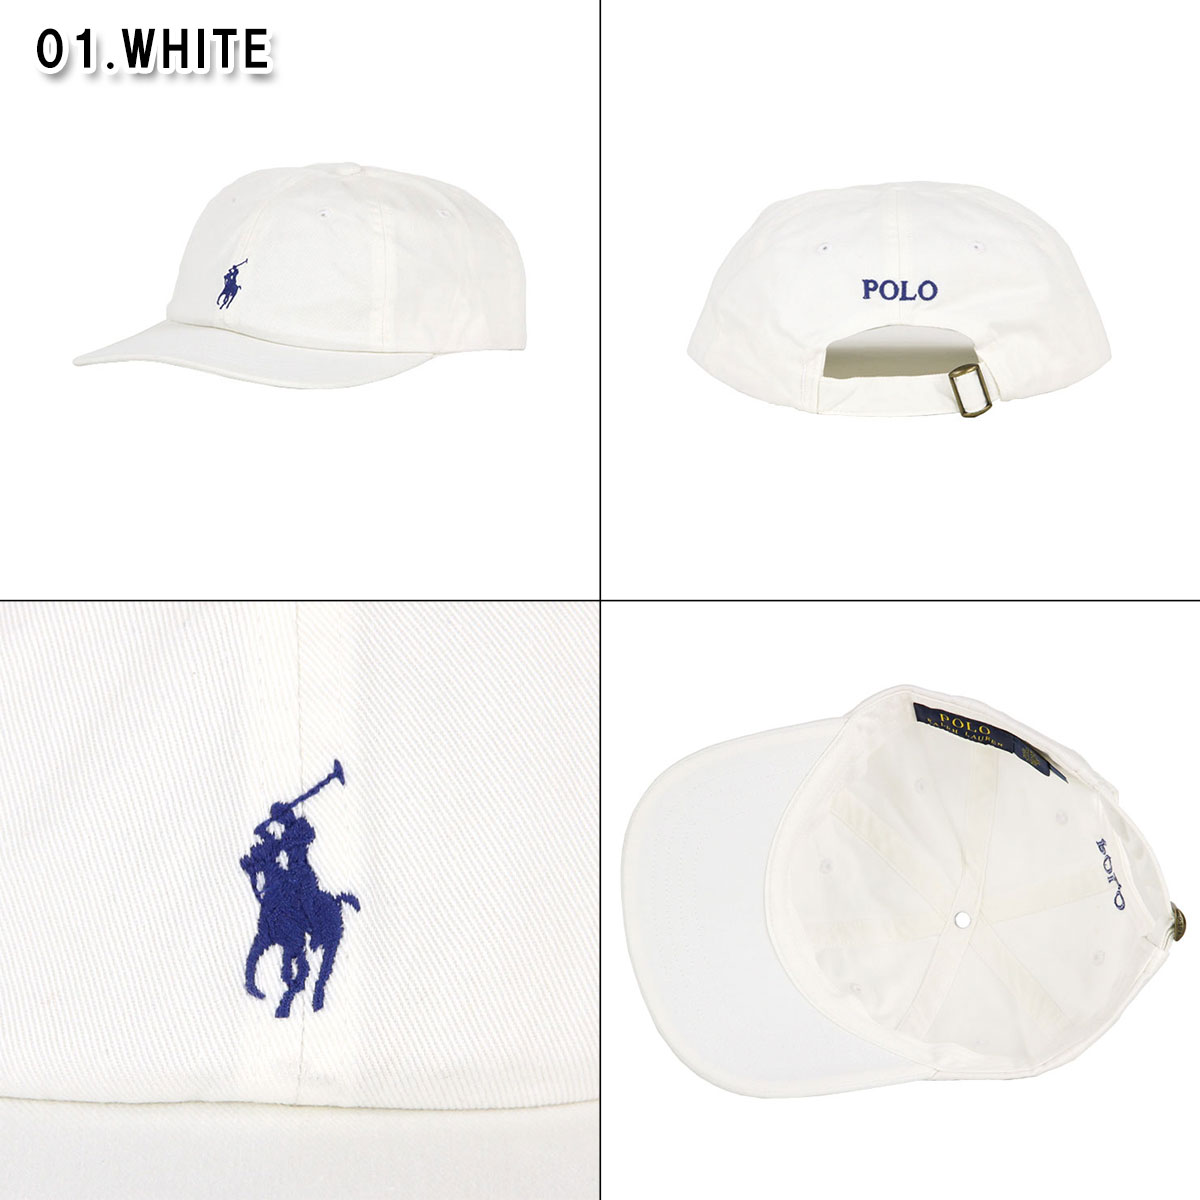 f1eaf0de9d4 Entering polo Ralph Lauren POLO RALPH LAUREN regular article men hat cap  one point embroidery COTTON BASEBALL CAP